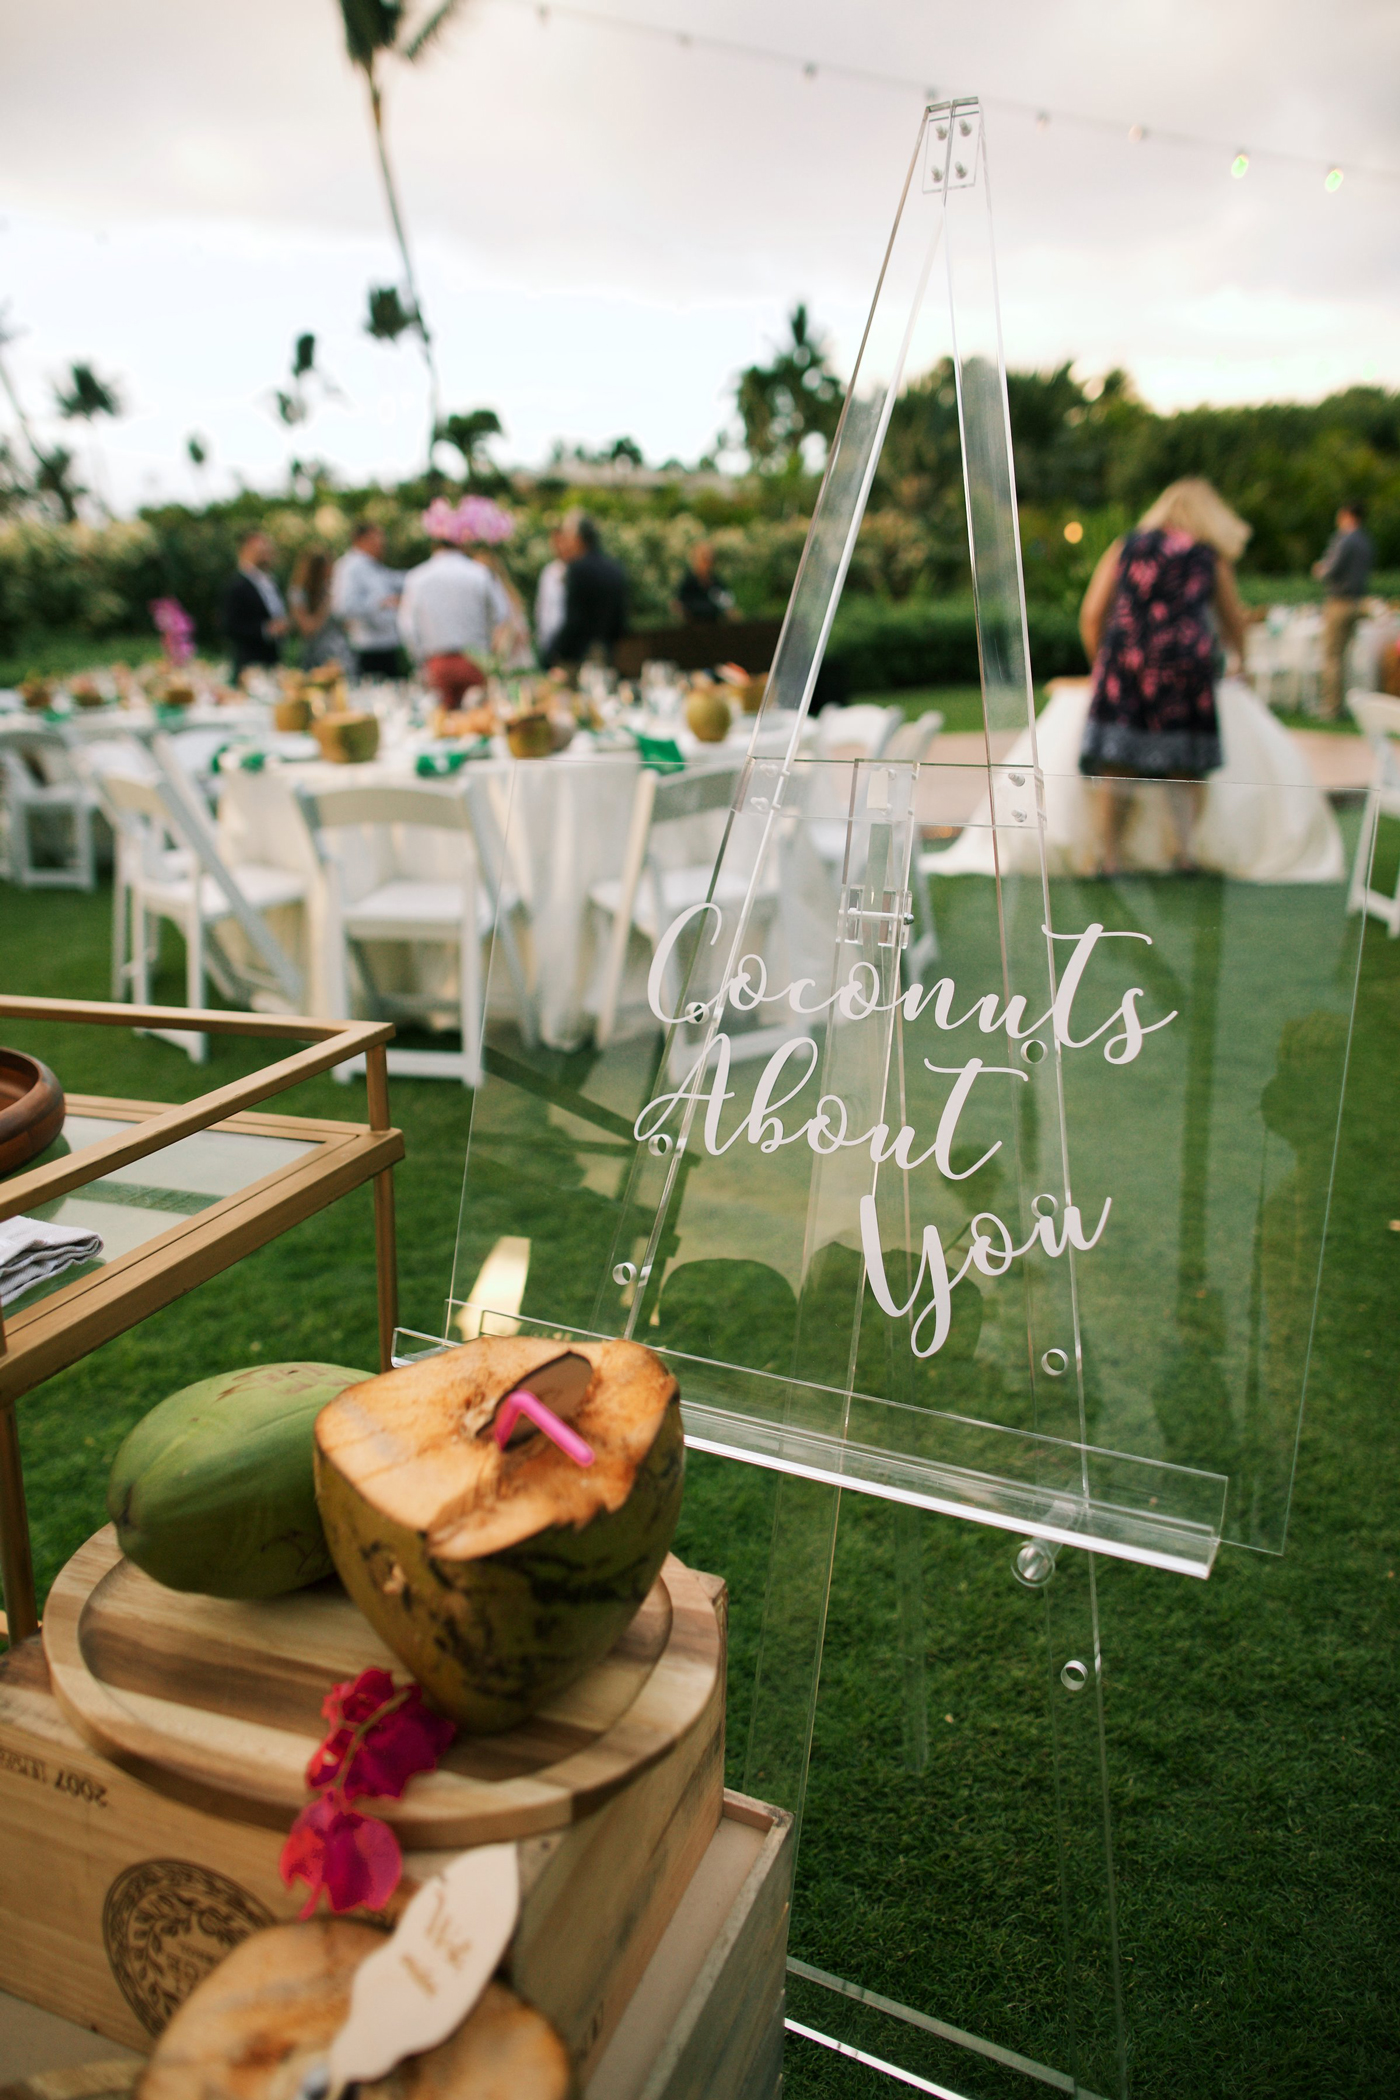 """acrylic sign calligraphed with """"Coconuts About You"""""""